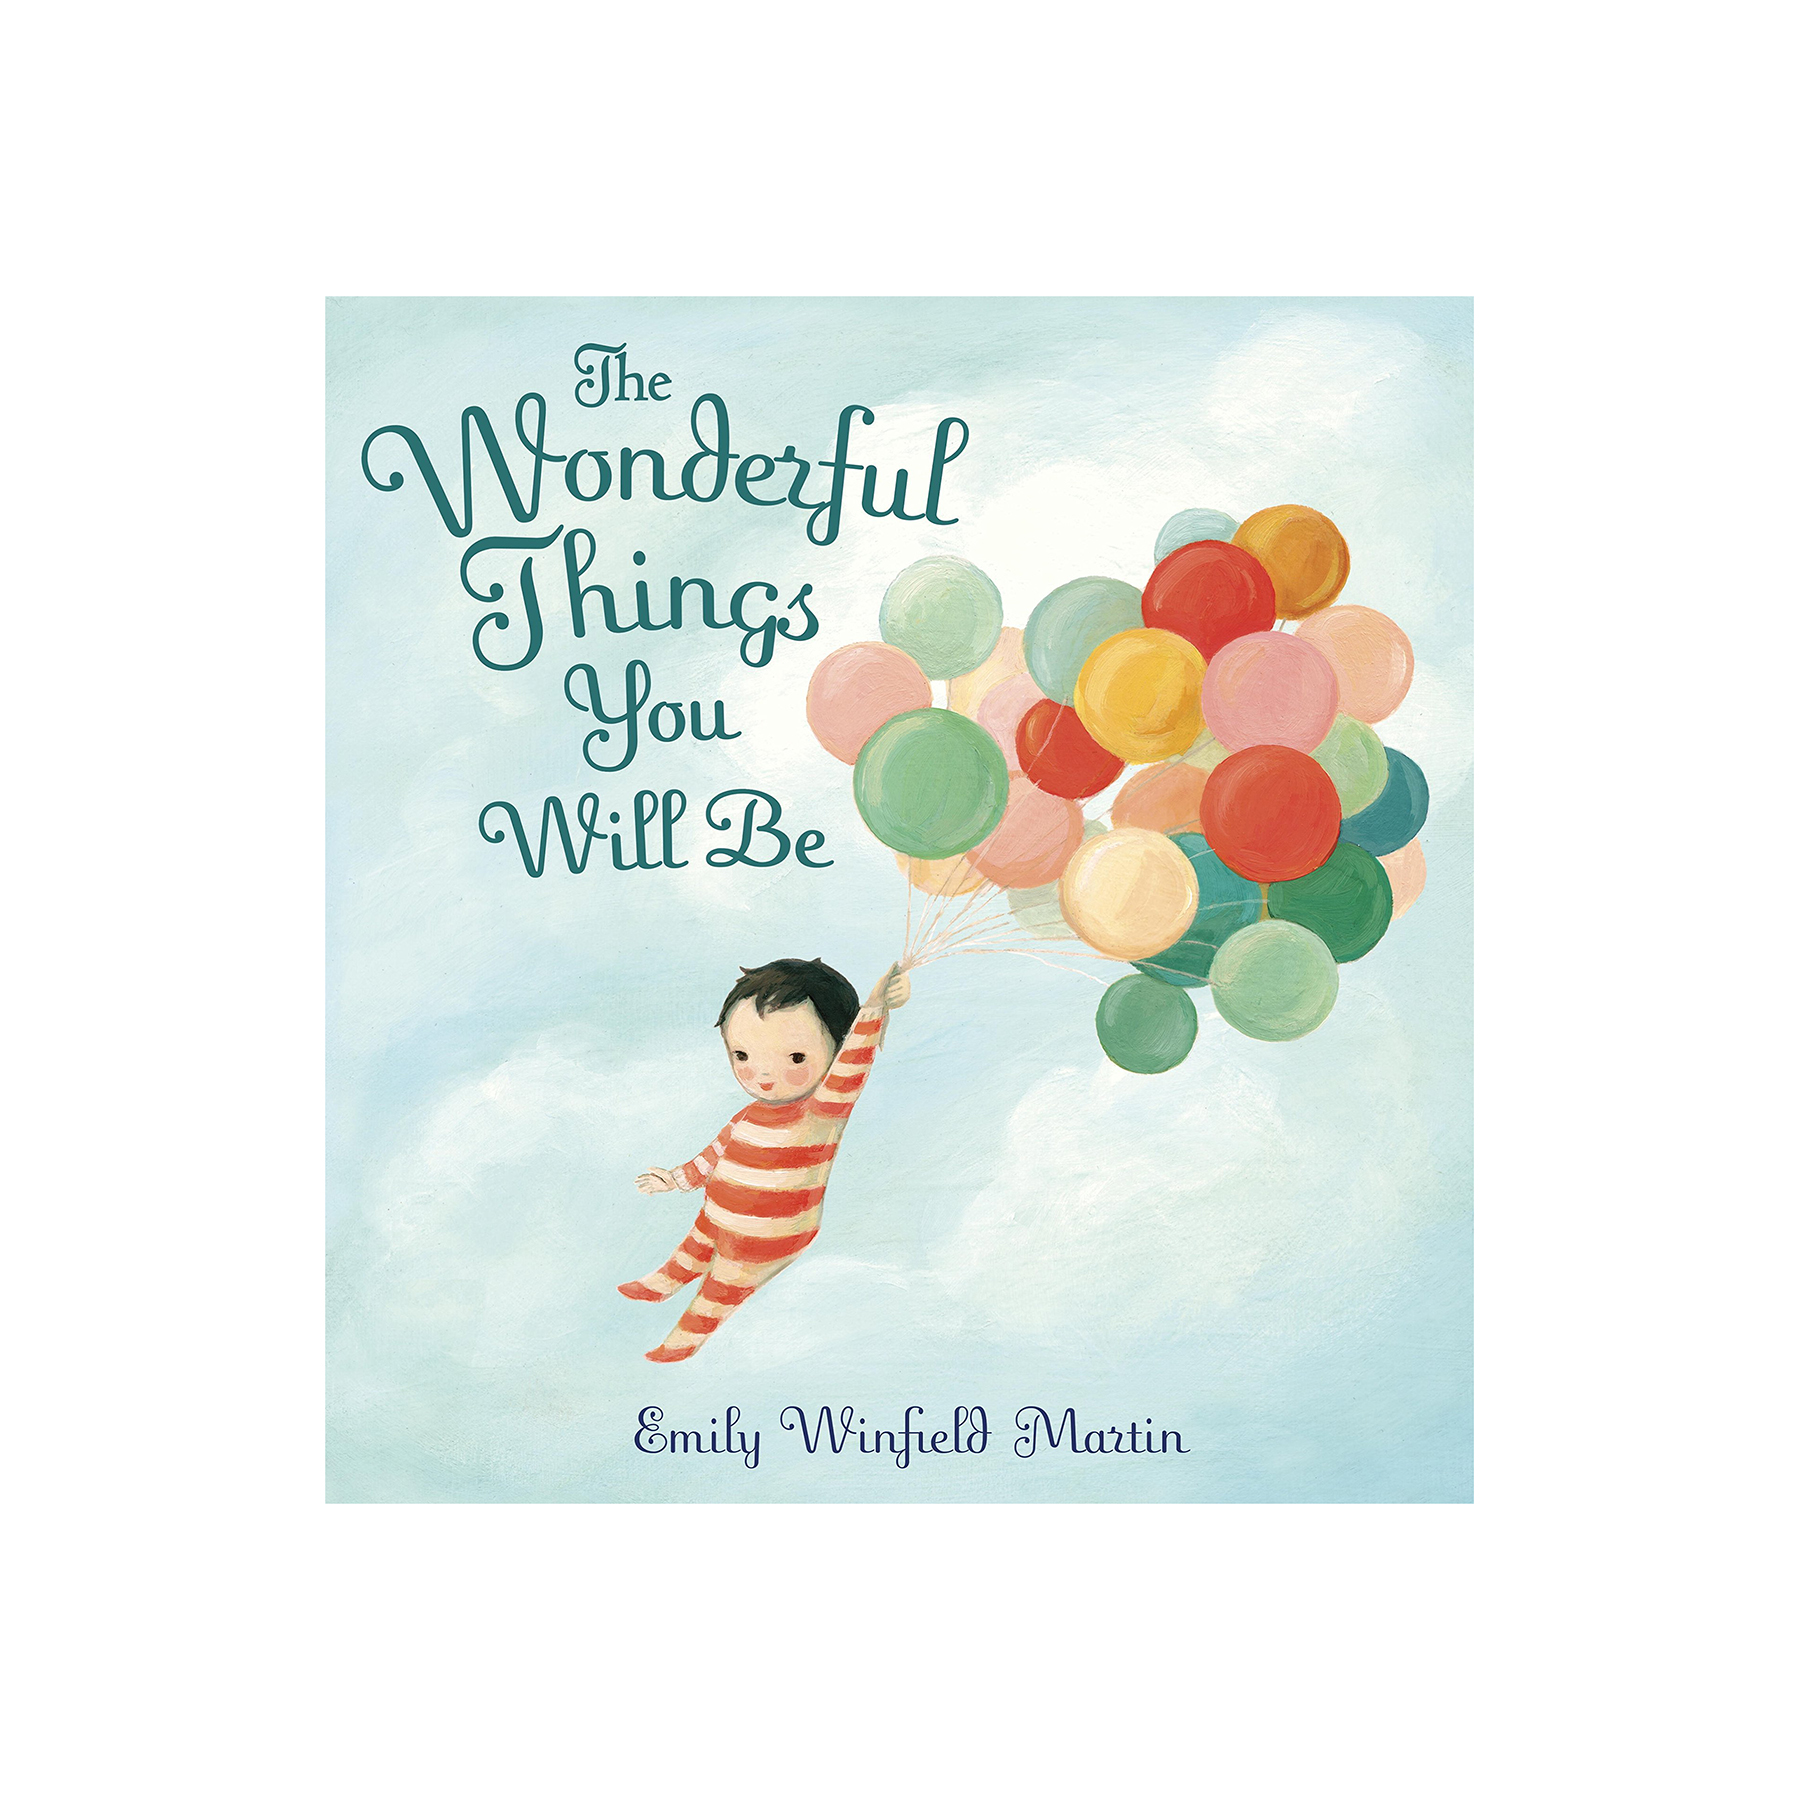 The Wonderful Things You Will Be, by Emily Winfield Martin